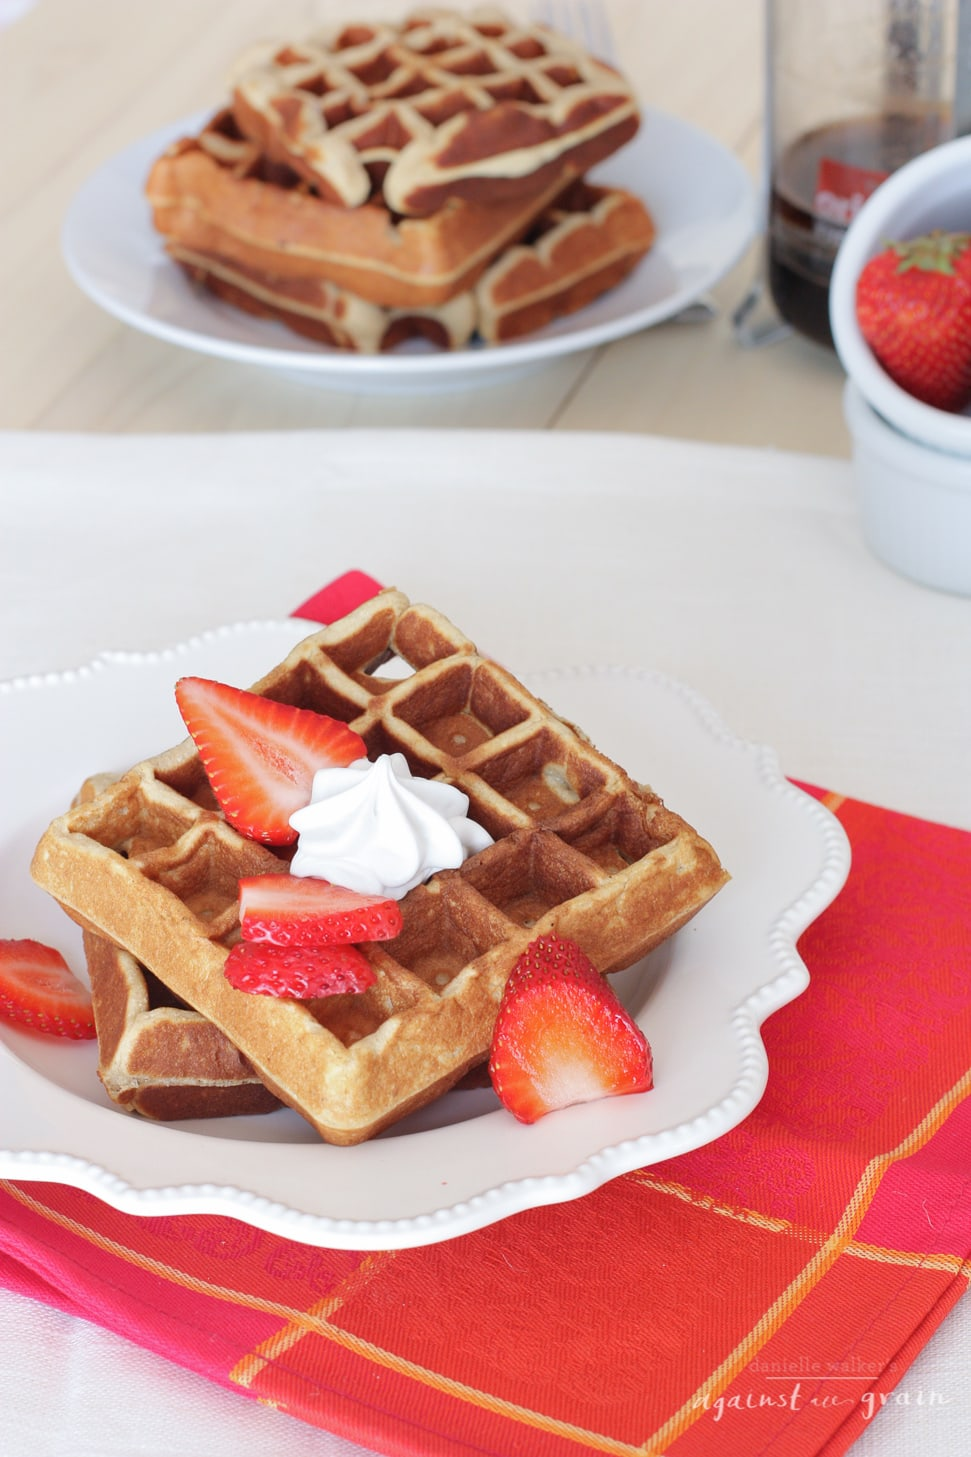 Grain-Free Waffles by Danielle Walker